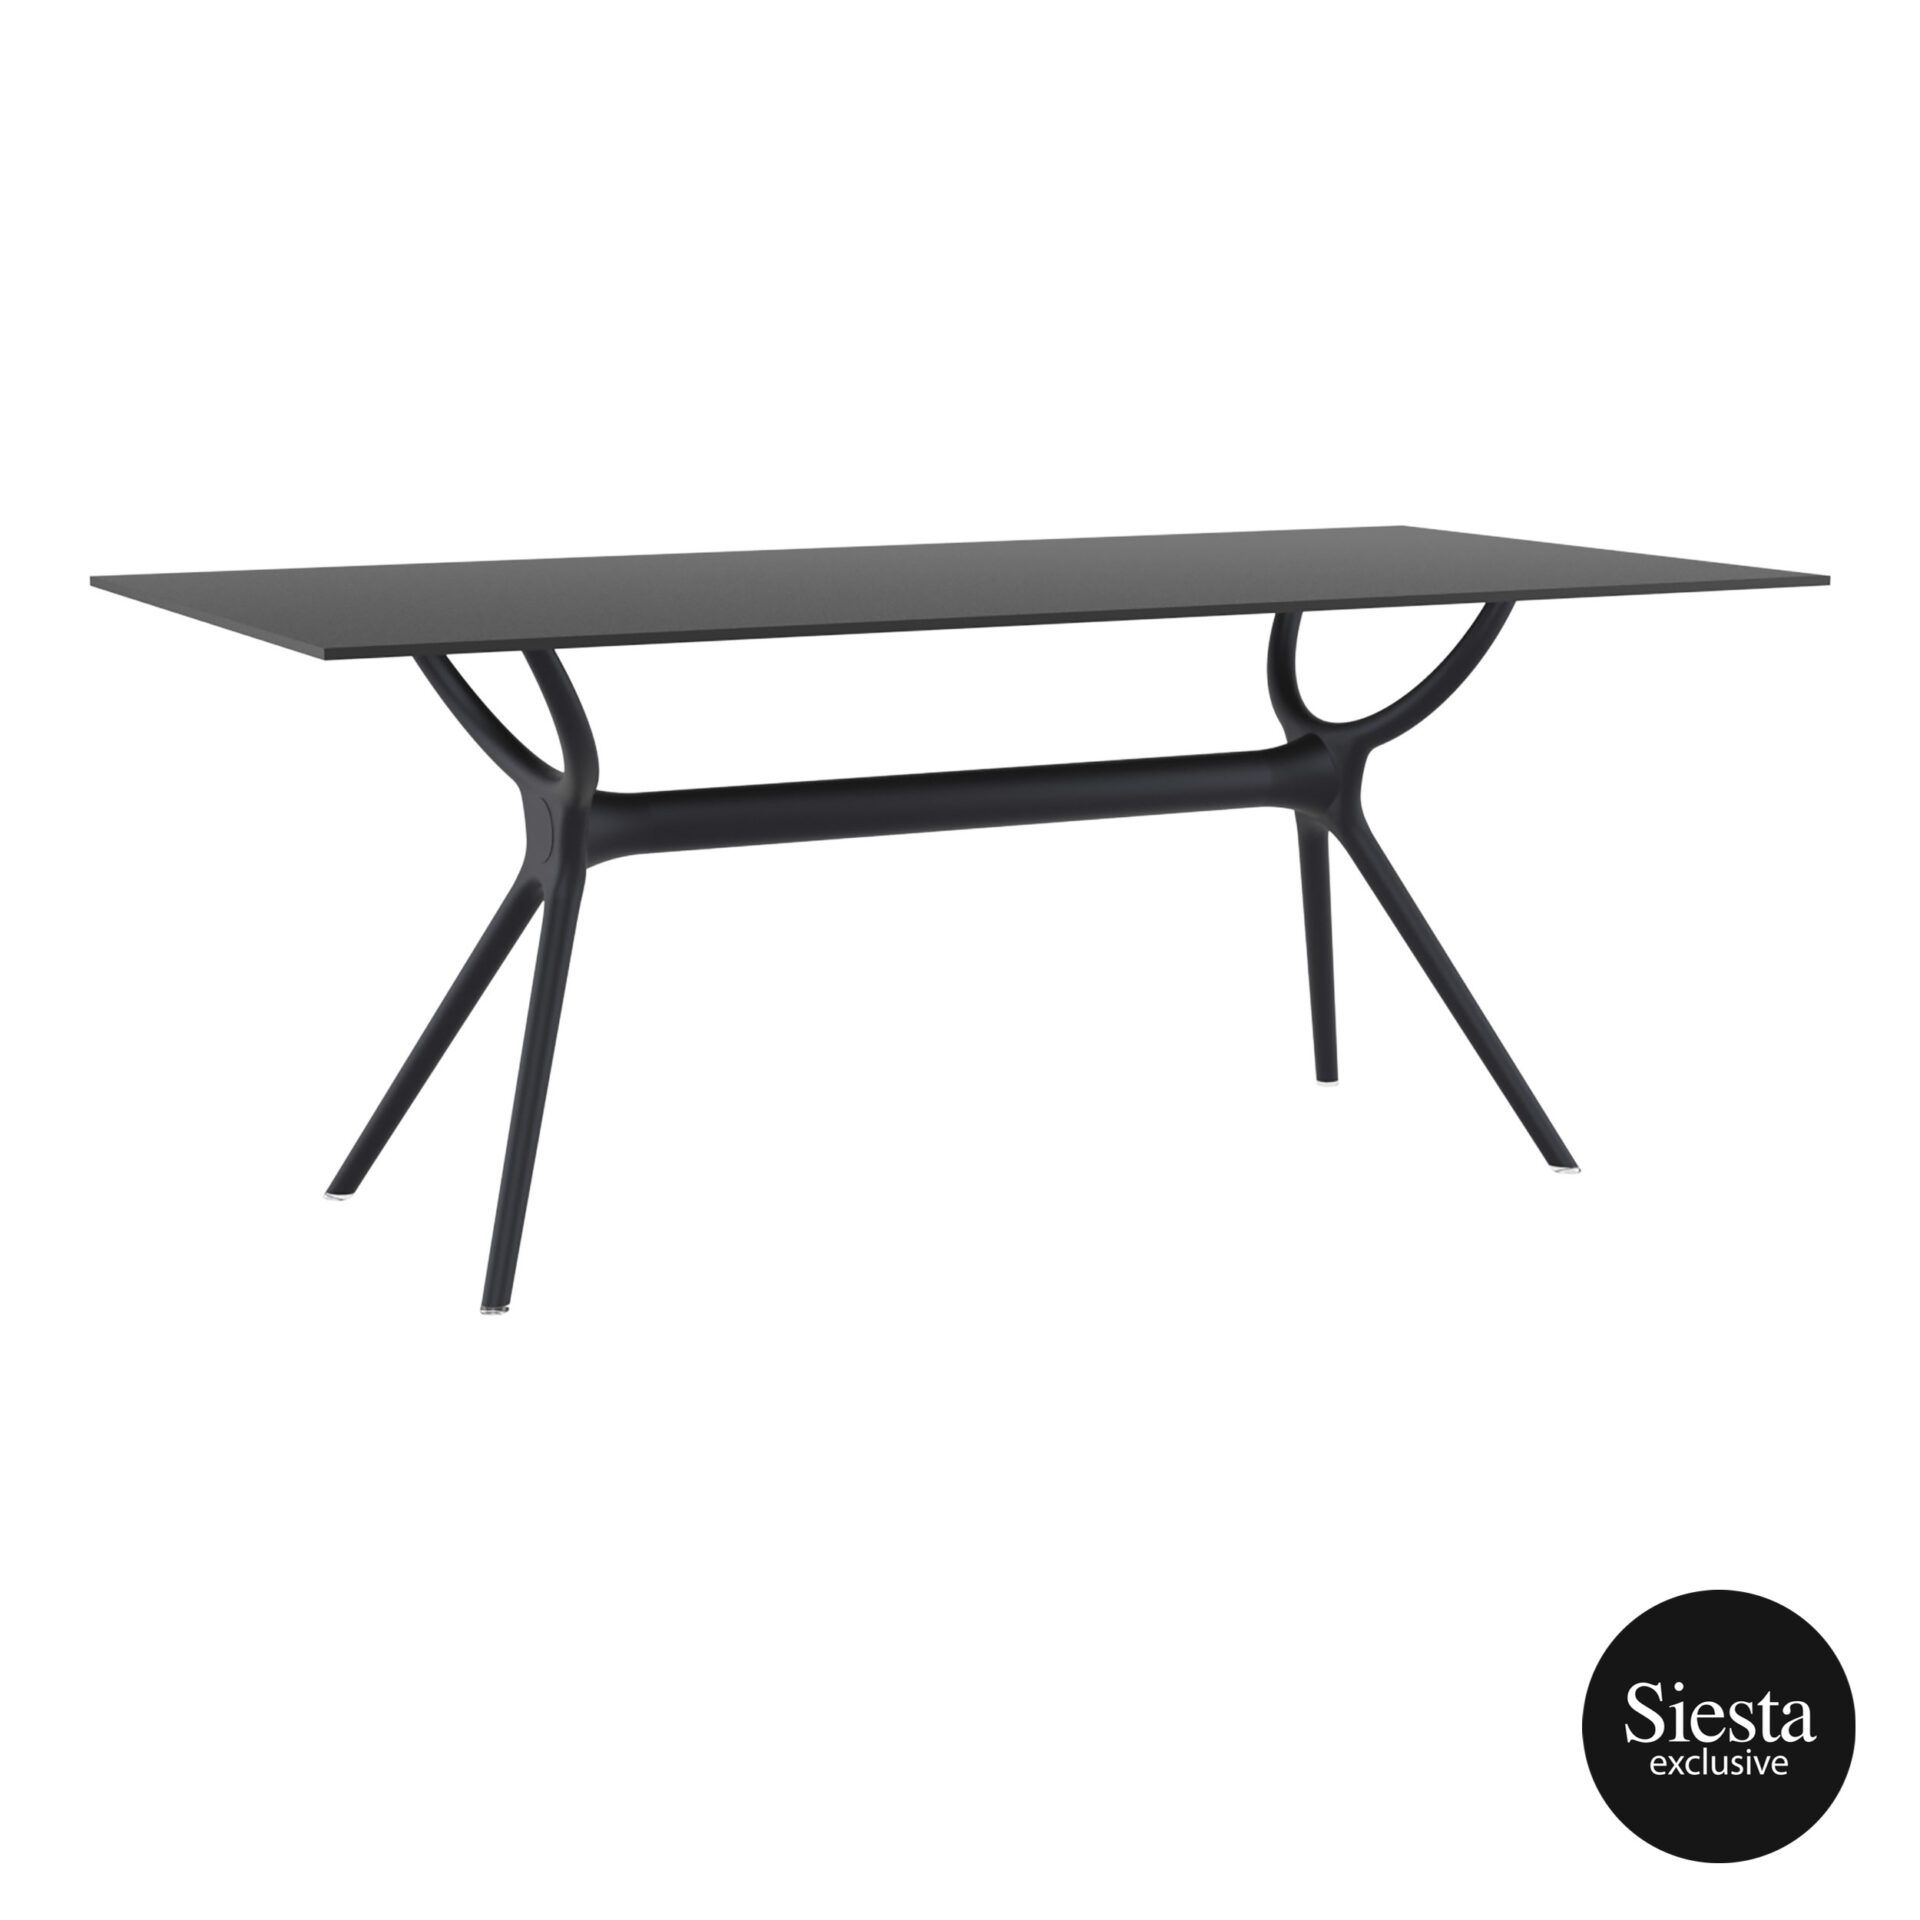 polypropylene dining air table 180 black front side 1